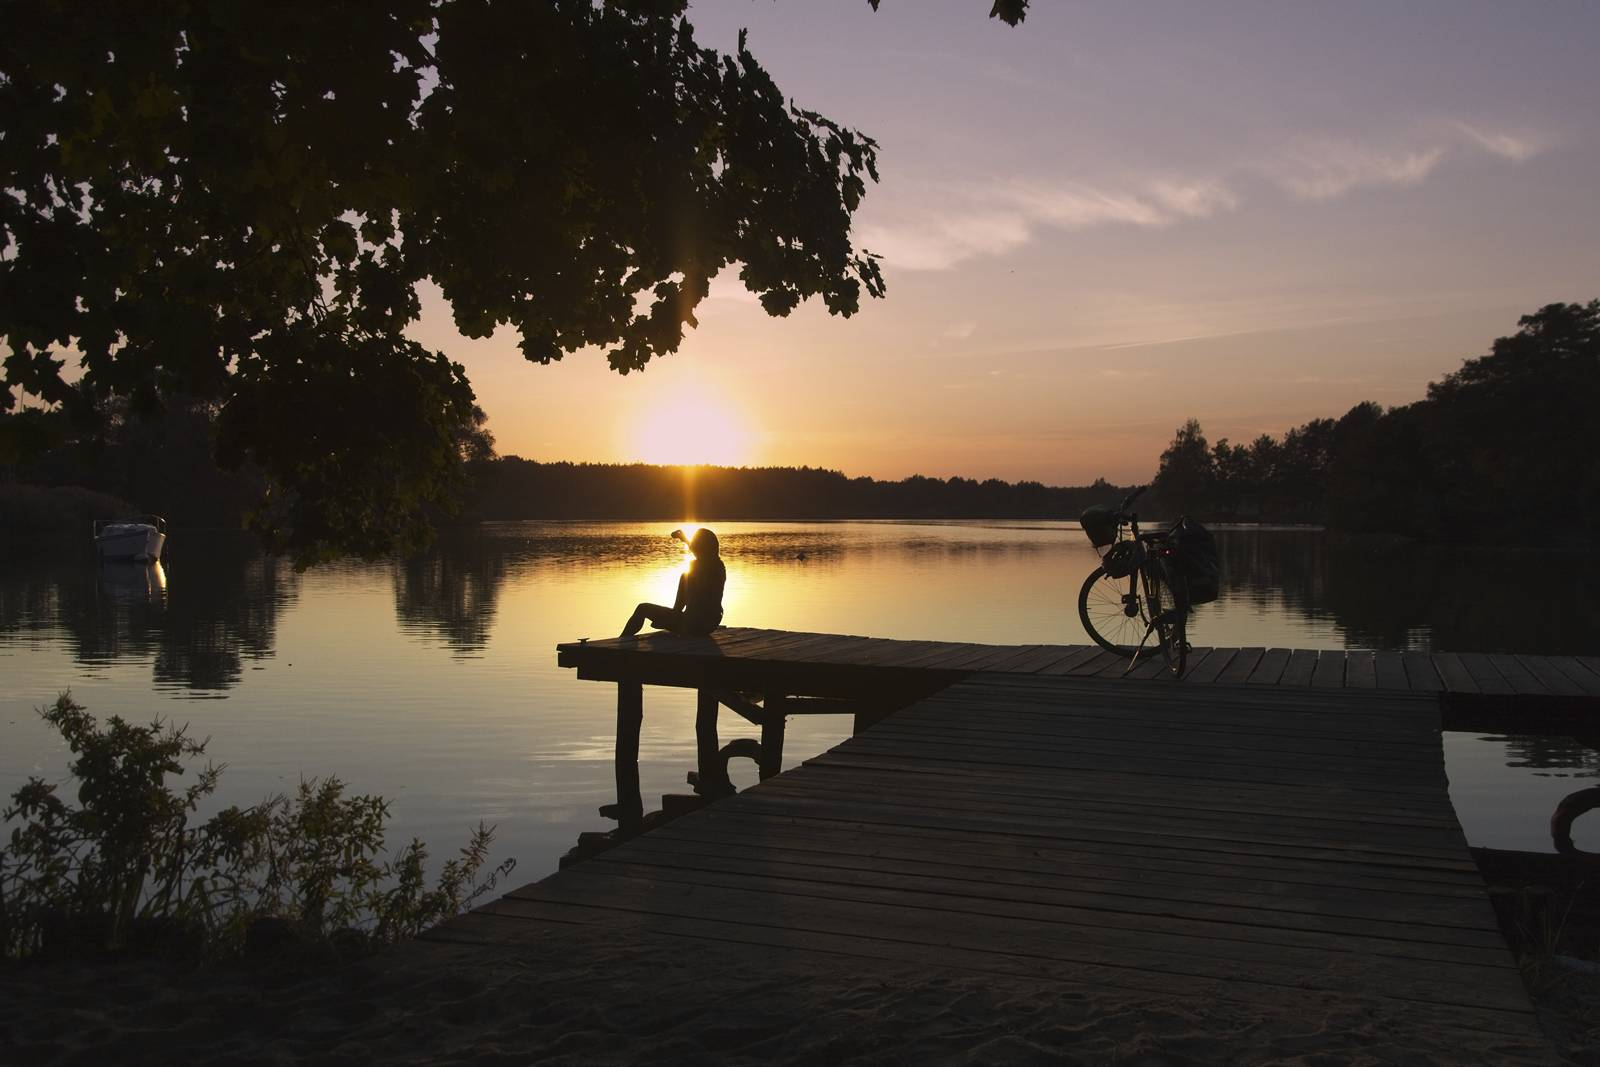 bydgoszcz poland sunset over the lake in koronowo a girl with a bike